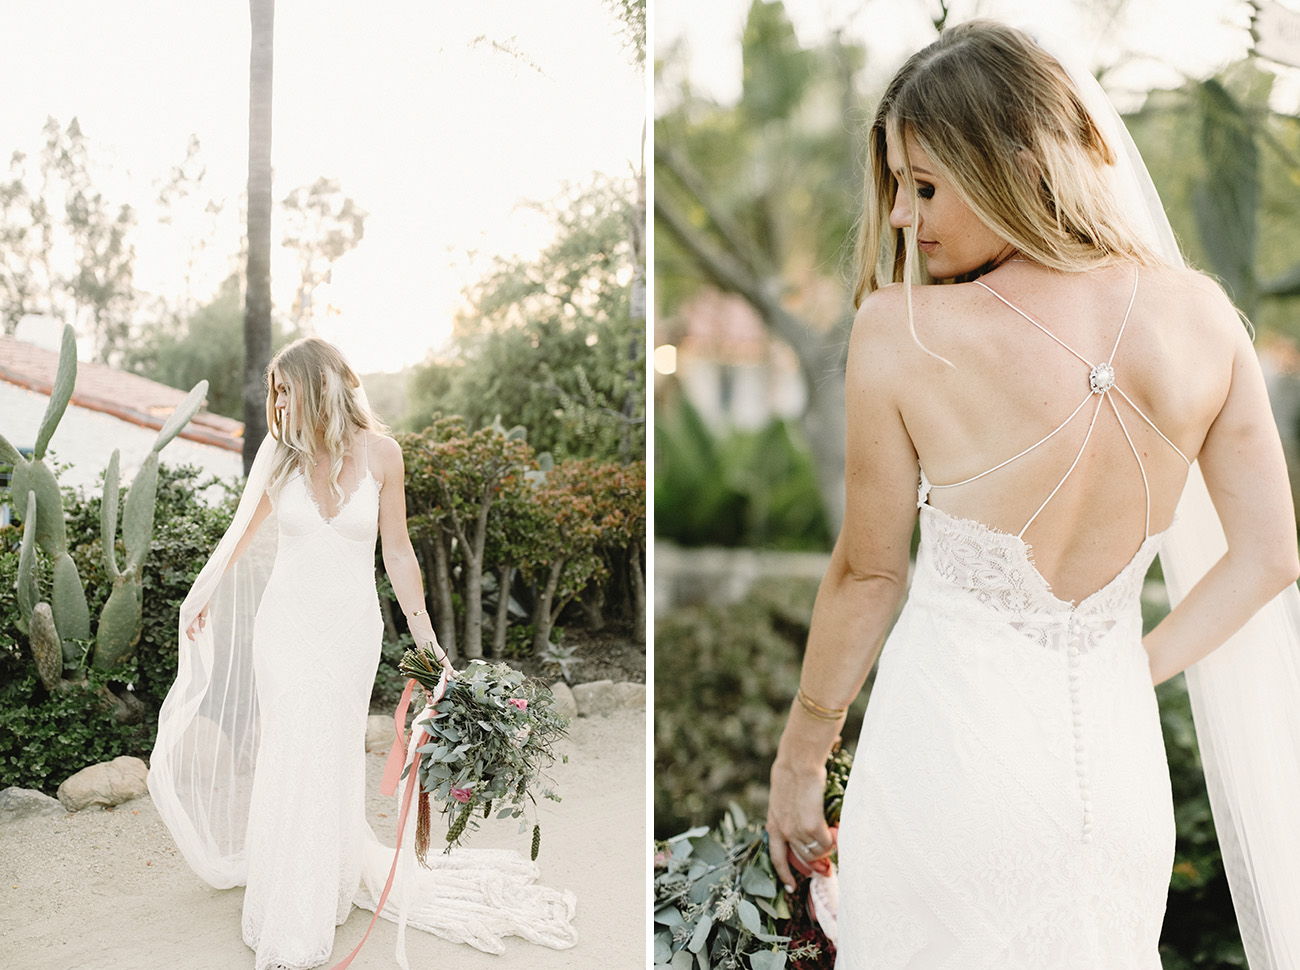 Drew Gown by Lovers Society and Green Wedding Shoes